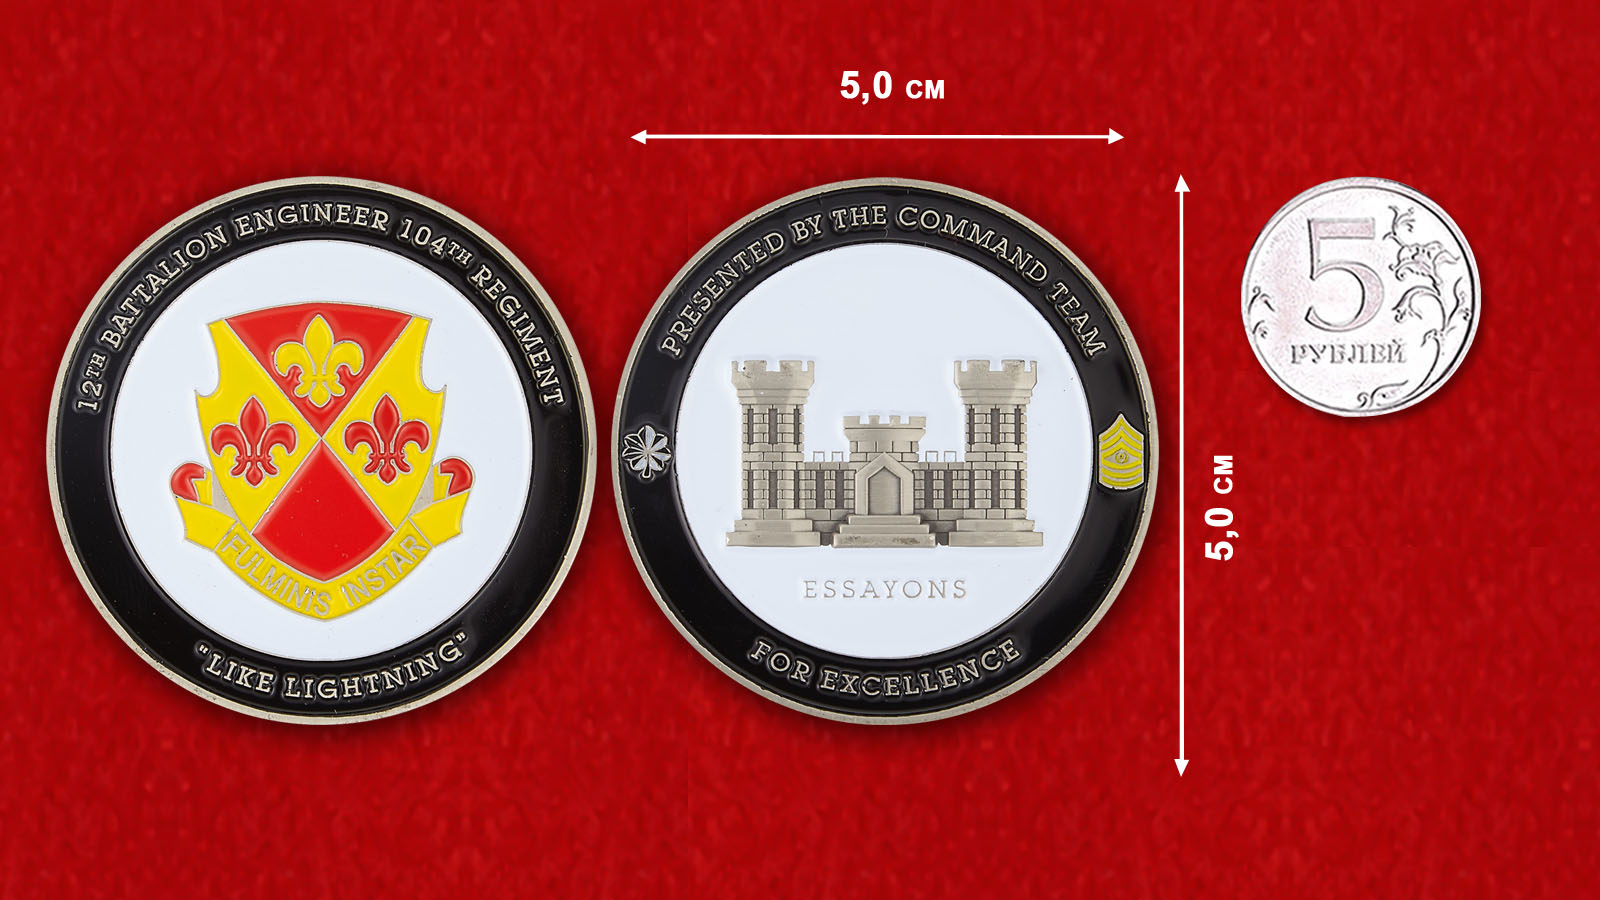 Presented by The Command Team For Excellence by 12th Battalion Engineer 104th Regiment Challenge Сoin - comparative size